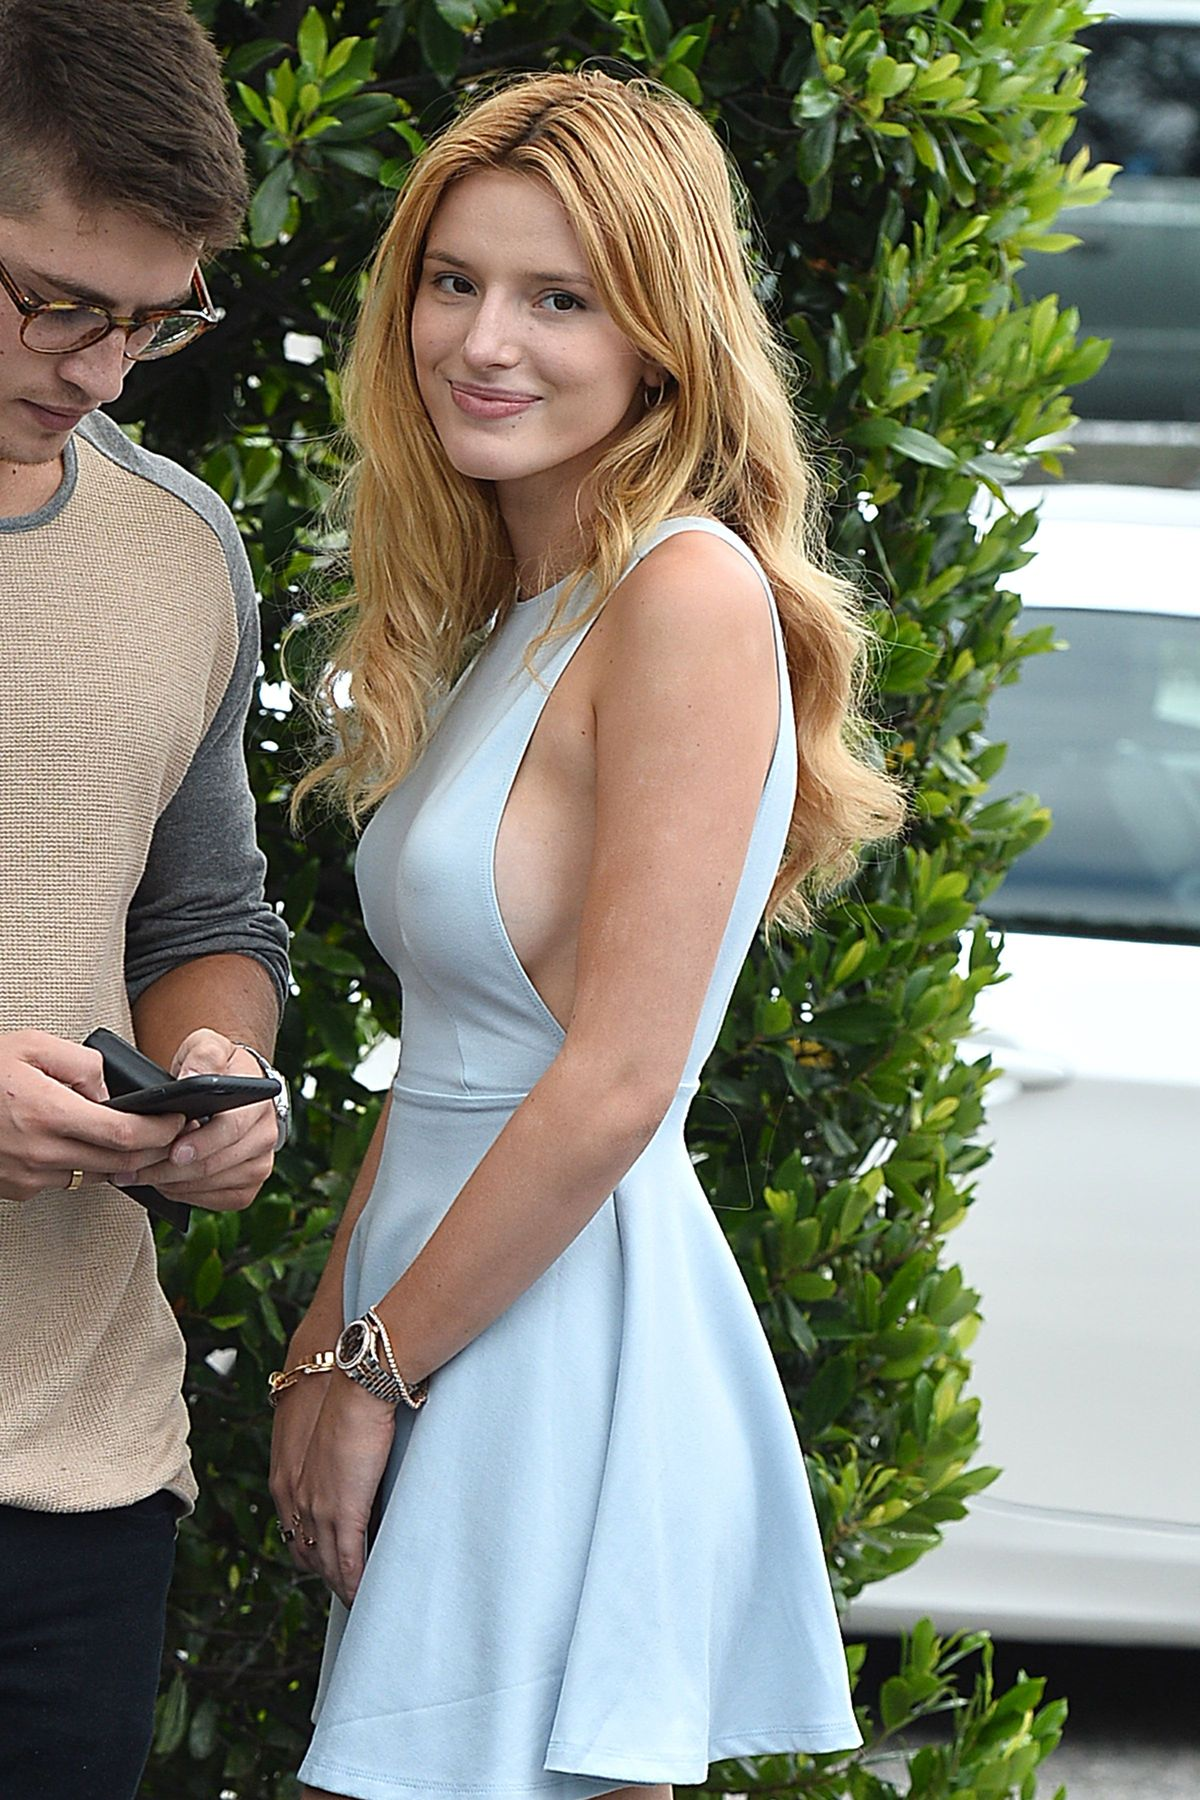 Bella Thorne Braless 21 TheFappening.nu